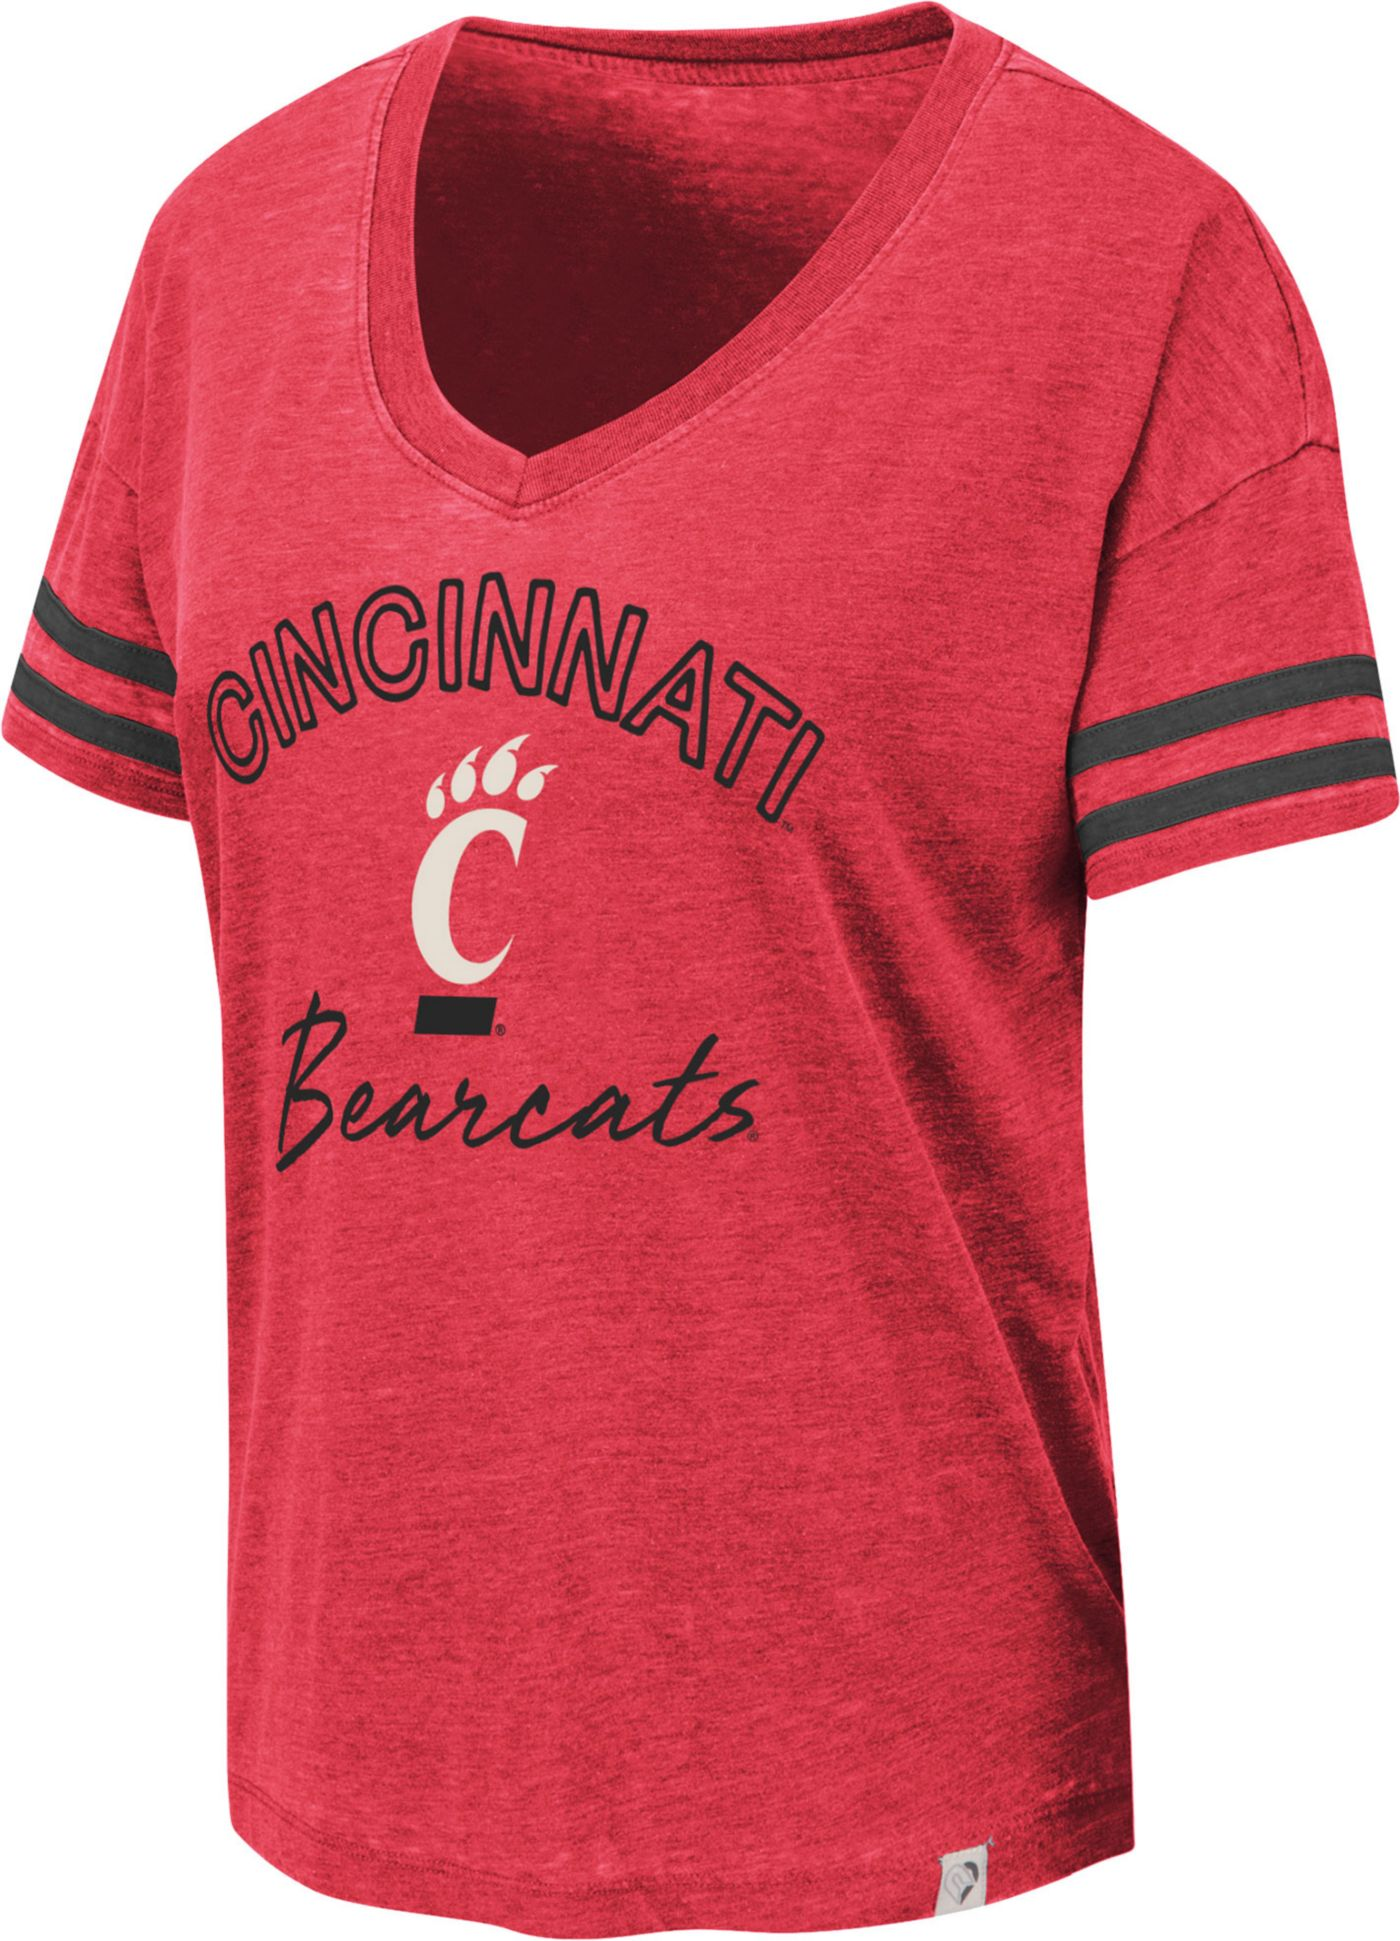 Colosseum Women's Cincinnati Bearcats Red Savona V-Neck T-Shirt